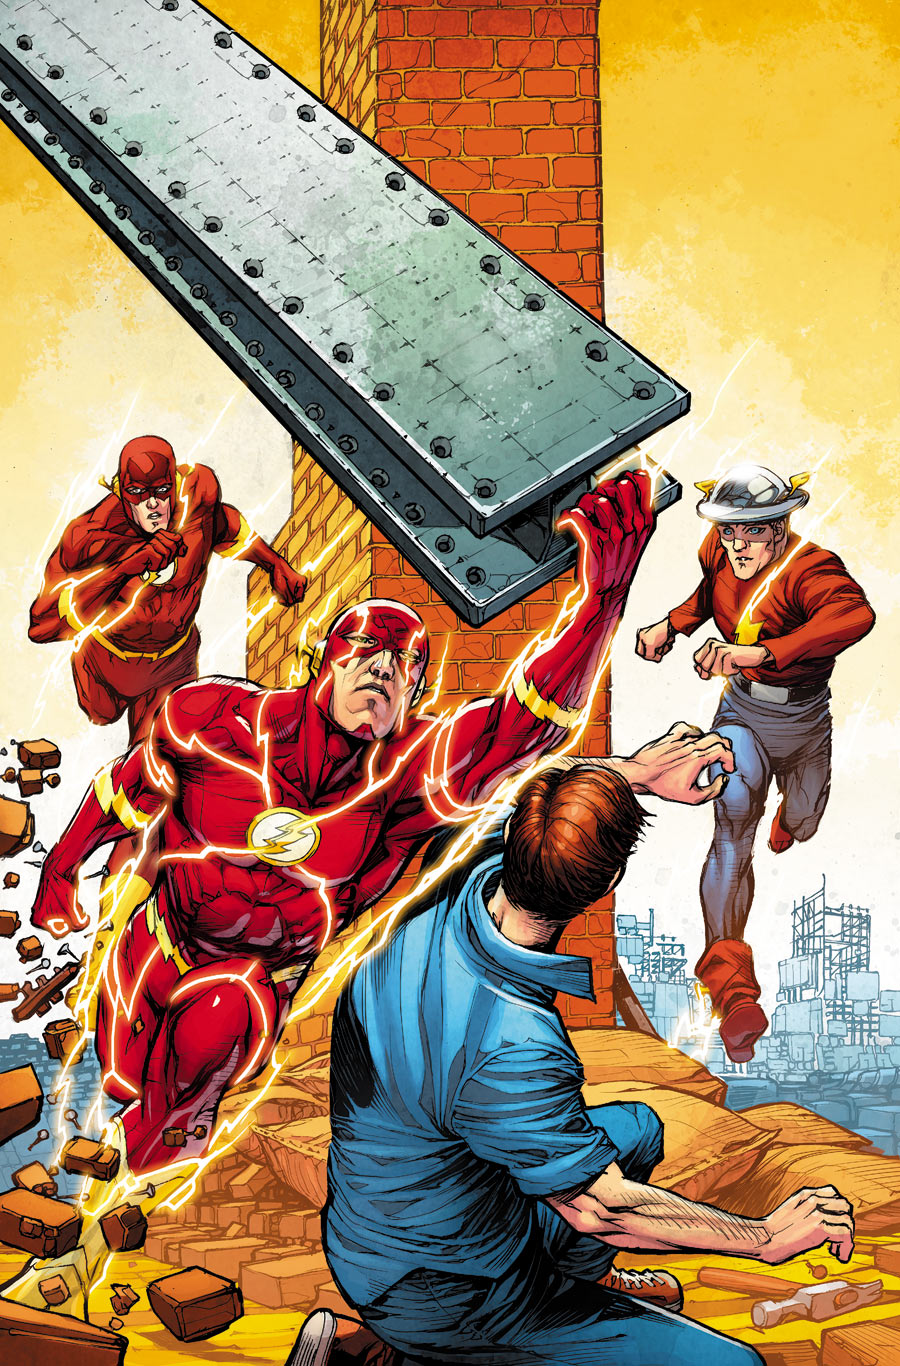 The Flash v4 #38 (2014). Arte de Howard Porter